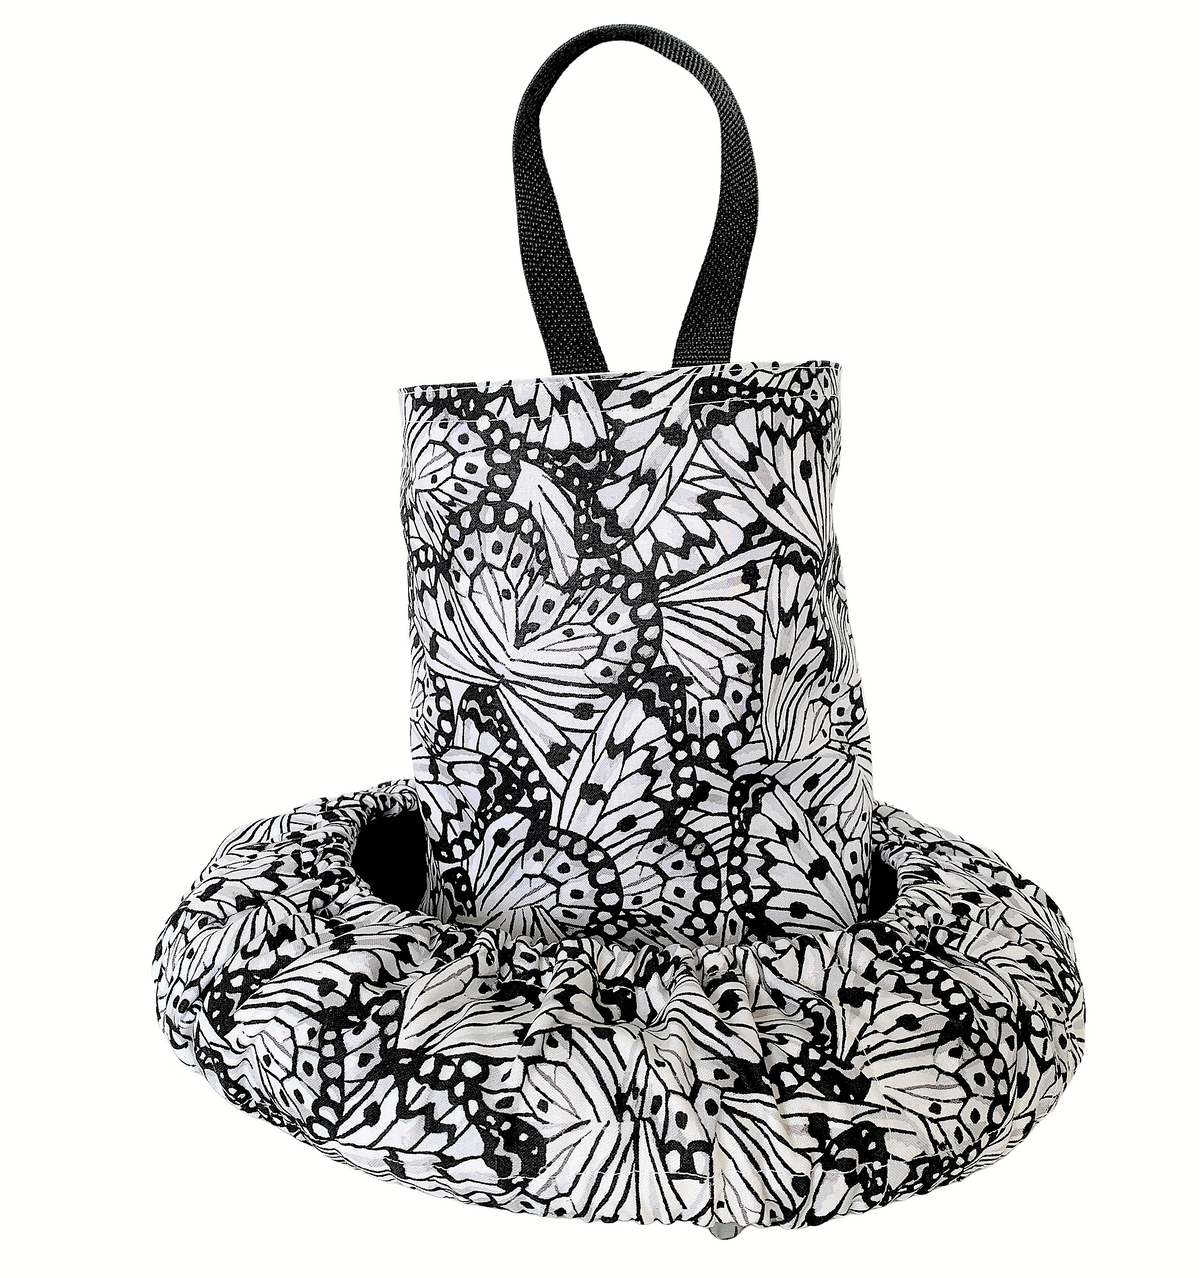 Butterflies Black & White Steering Wheel Cover - Comfy Grippy Wheel Cover